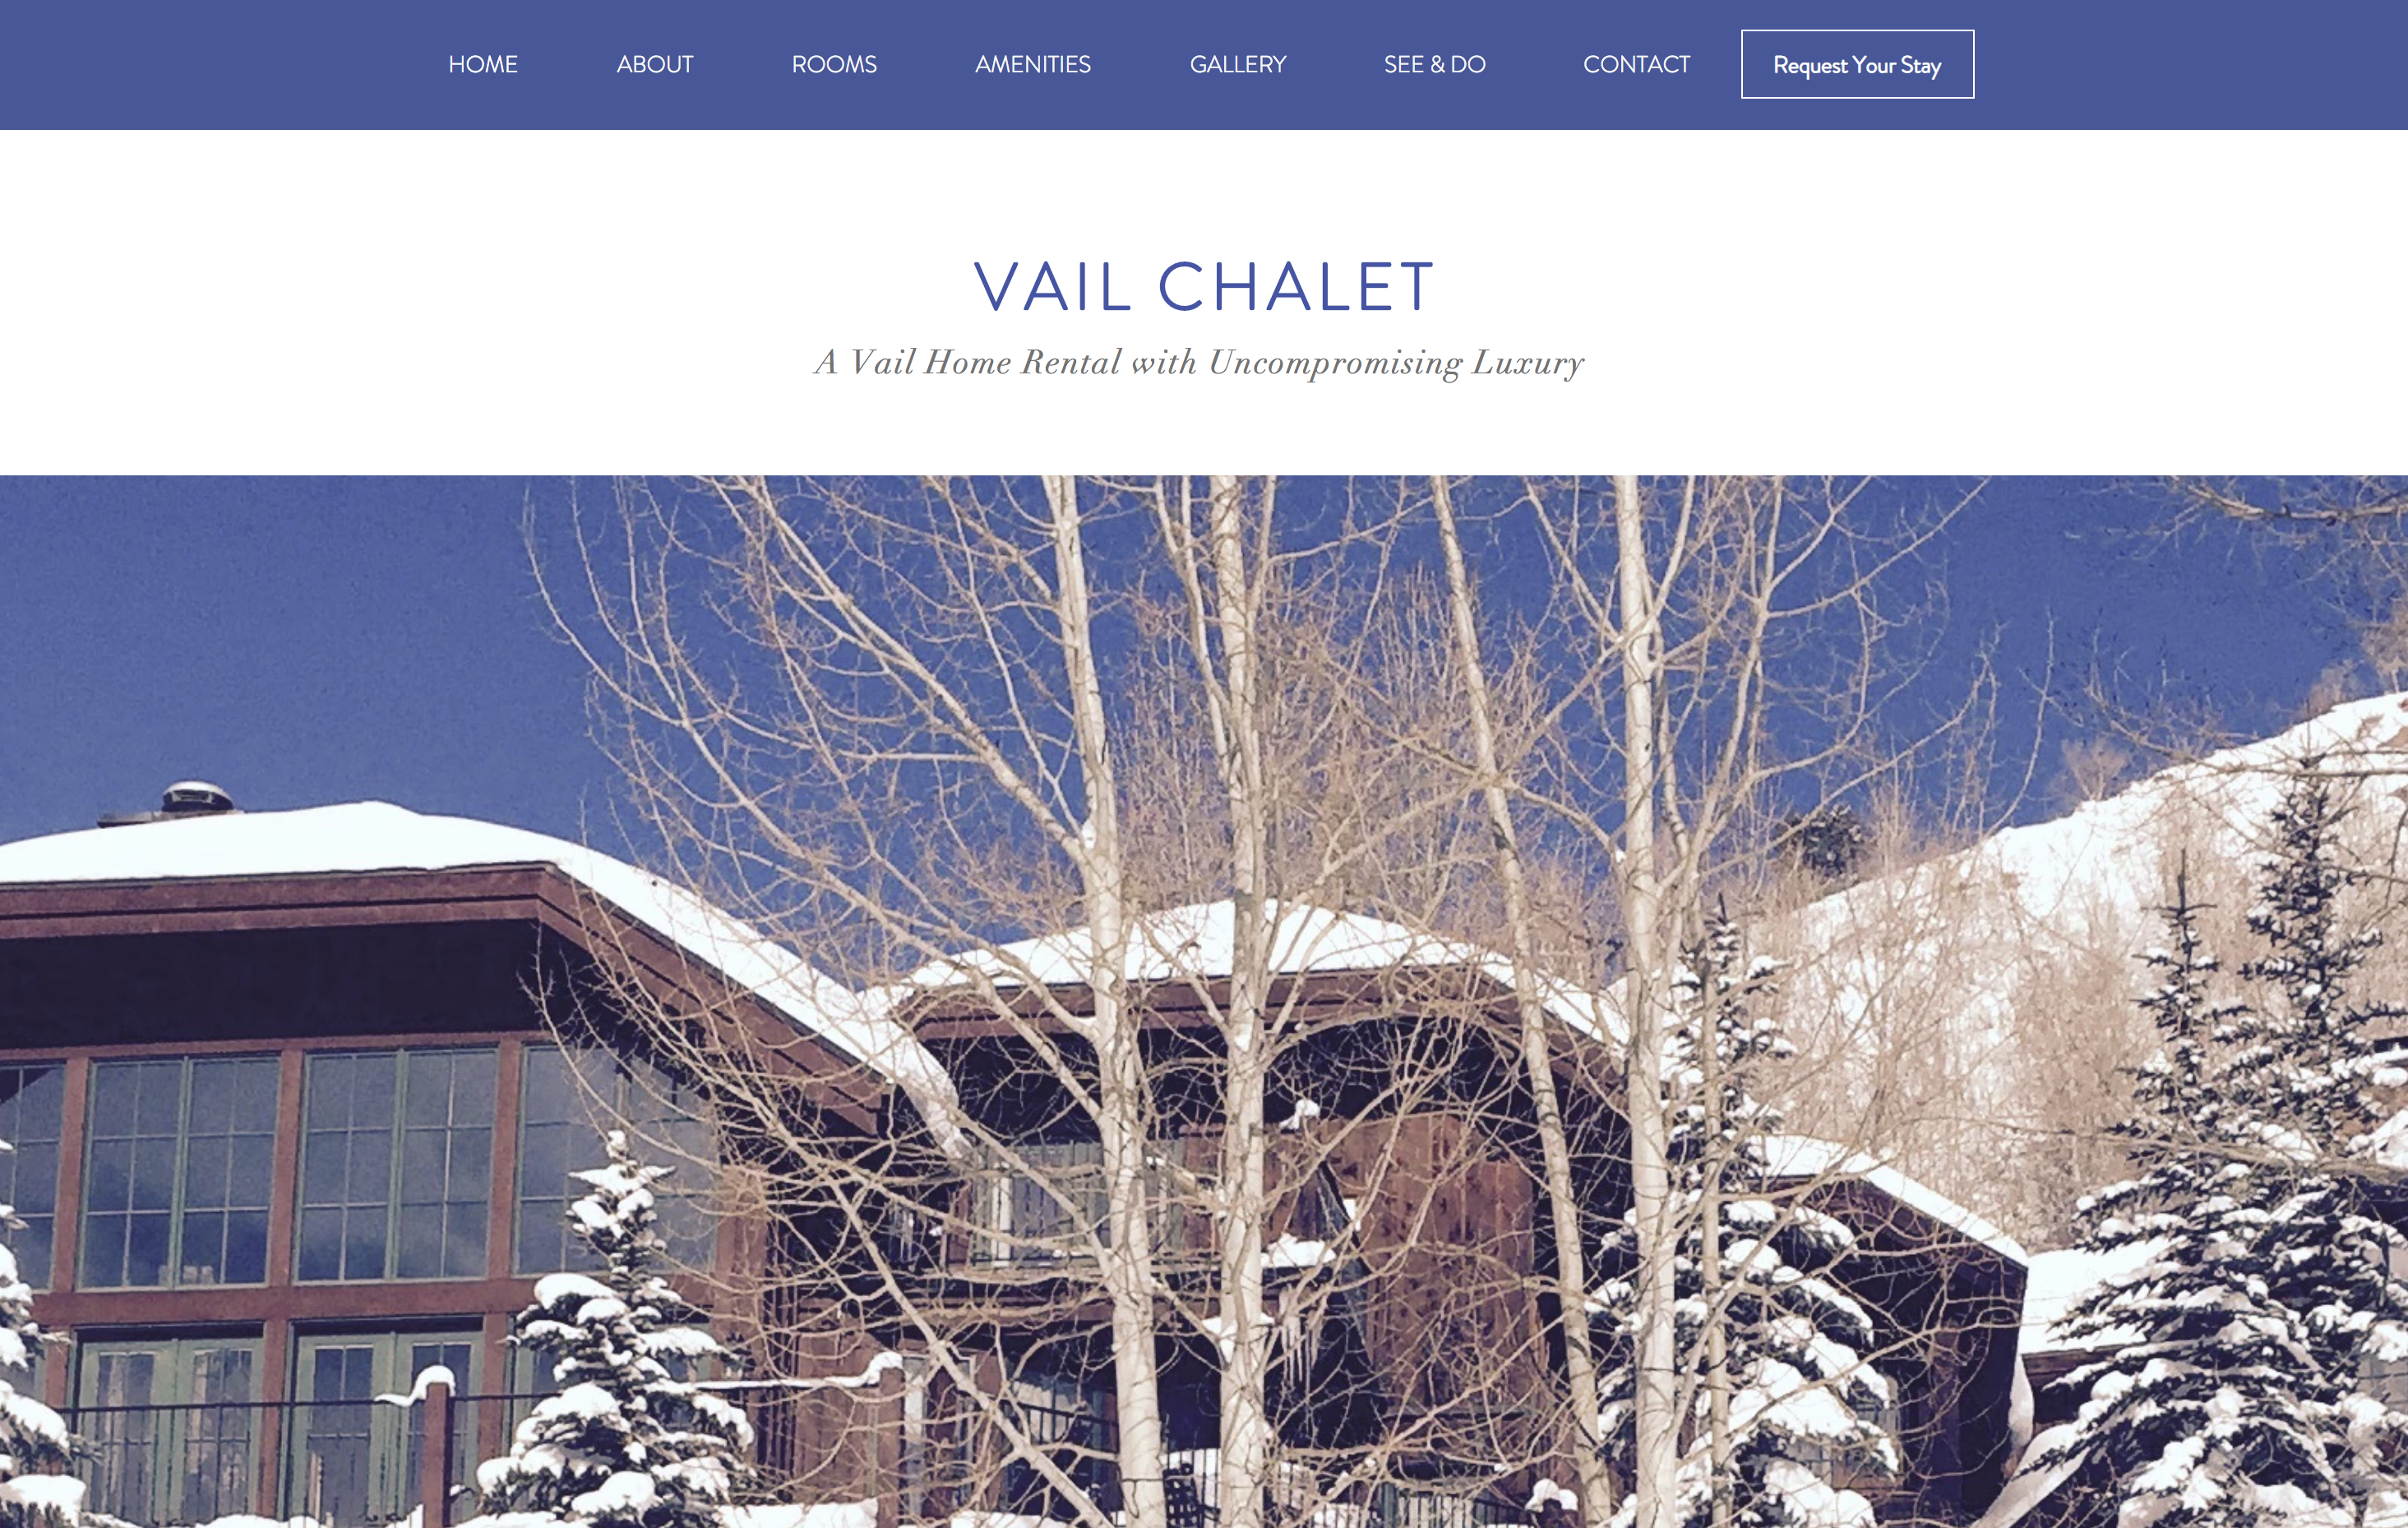 Vail Chalet